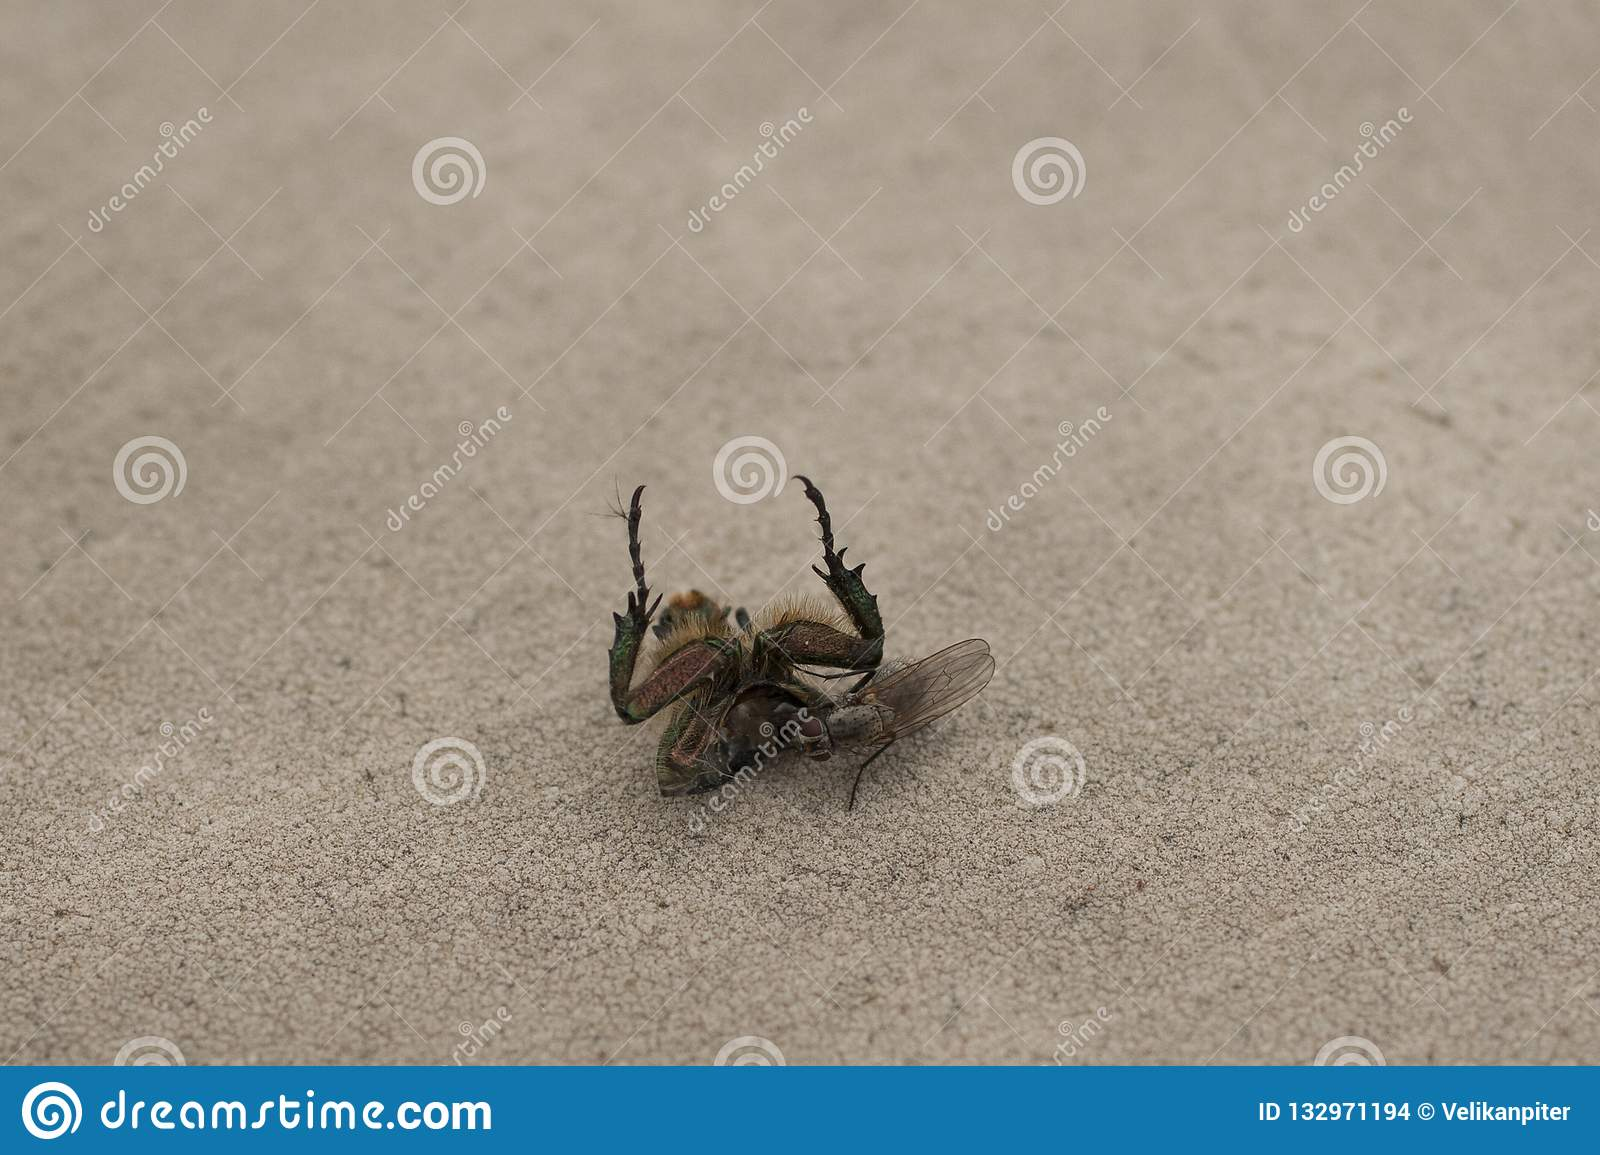 Food small flies. Weekdays in the world of insects.